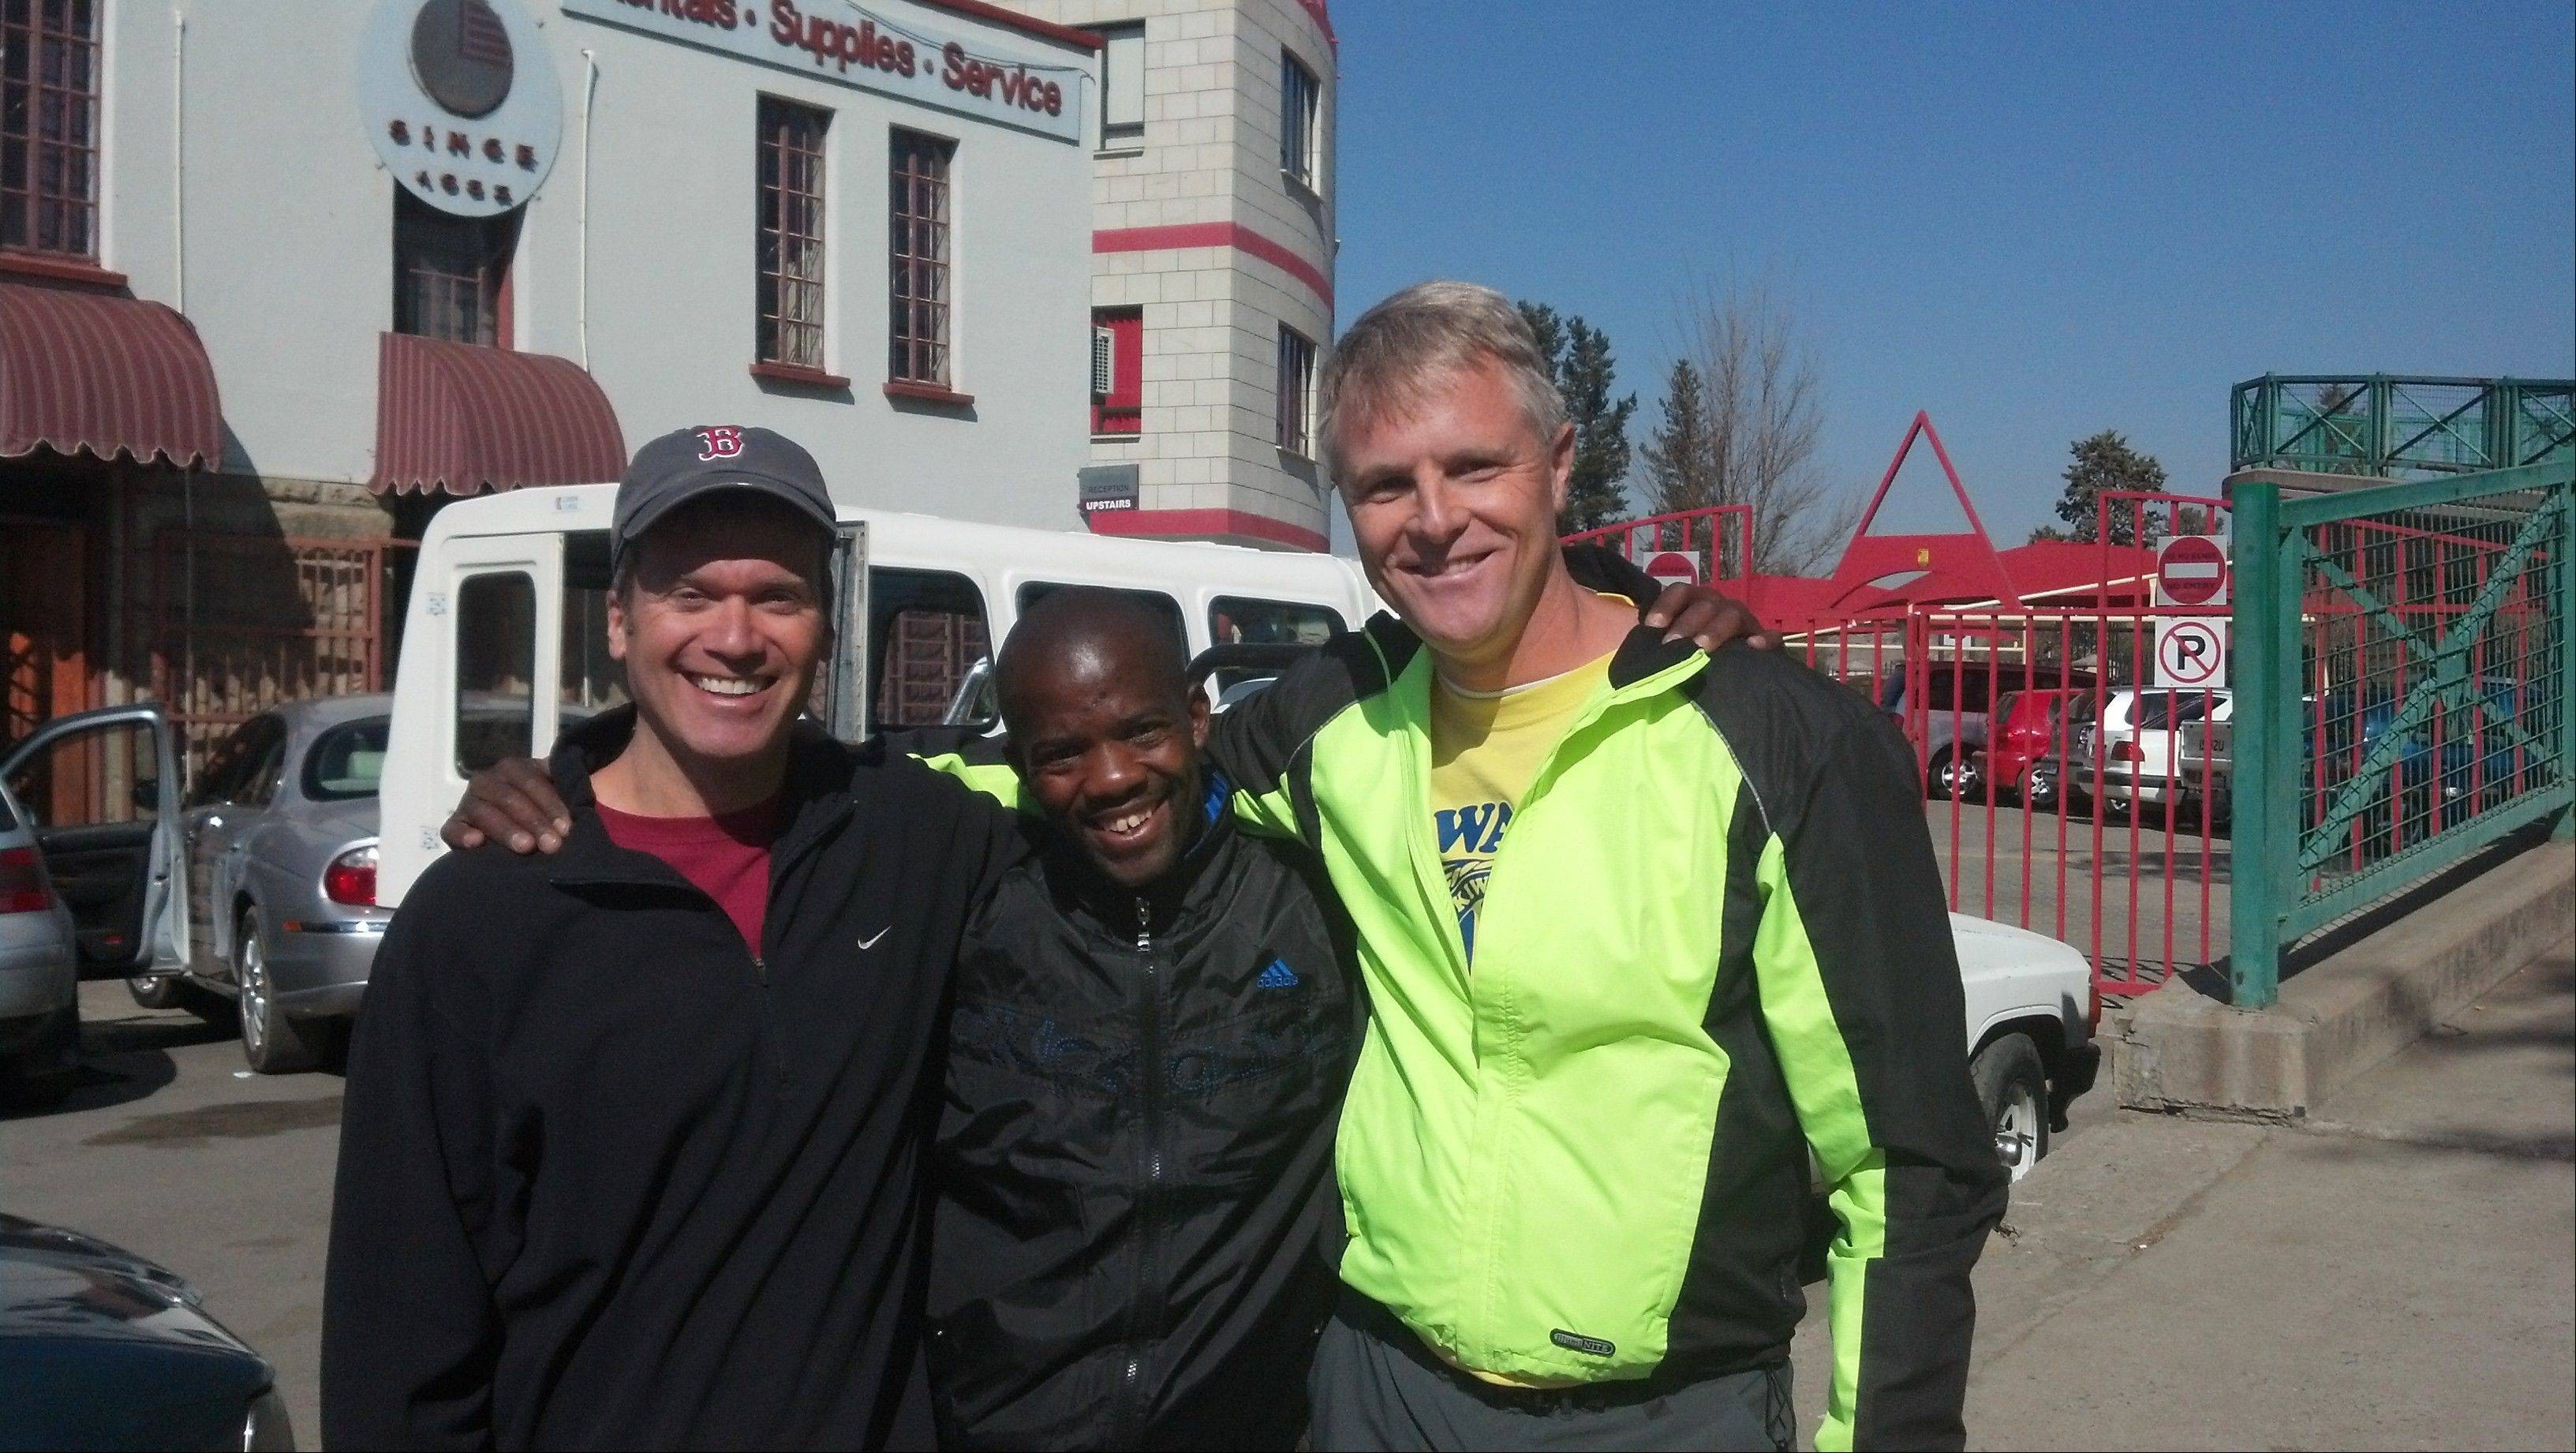 Jeff Teppema, left, and Dave Gorman, right, met Tumisang Taabe, head of the Lesotho Cycling Association, during their bike ride across the African country.